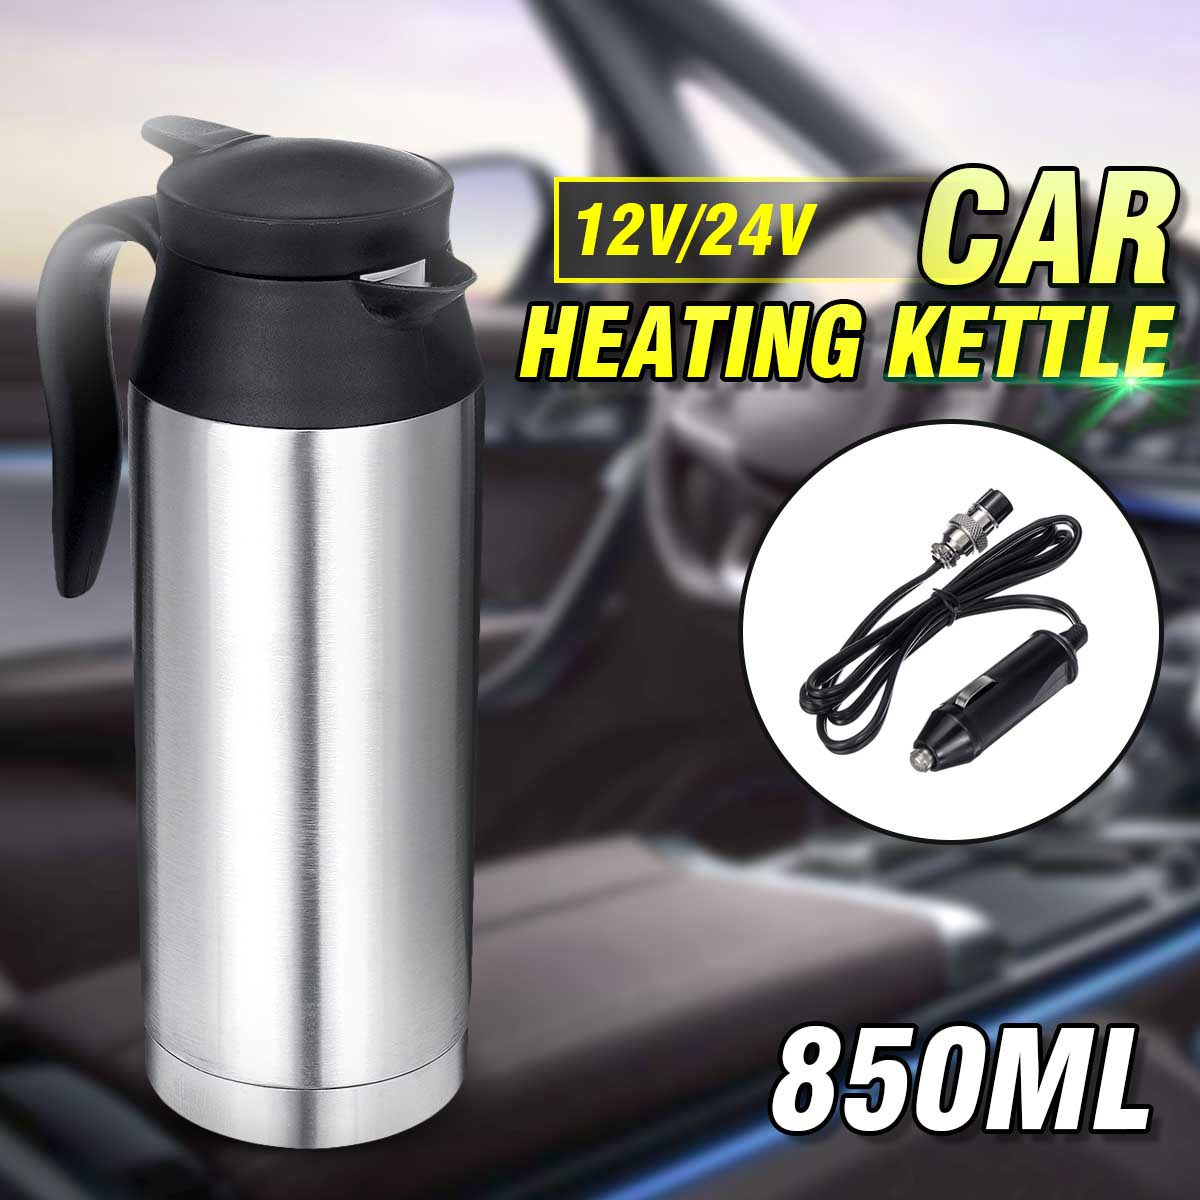 12V /24V Stainless Steel  Electric Kettle 800ml In-Car Travel Trip Coffee Tea Heated Mug Motor Hot Water Boiling For Car Truck